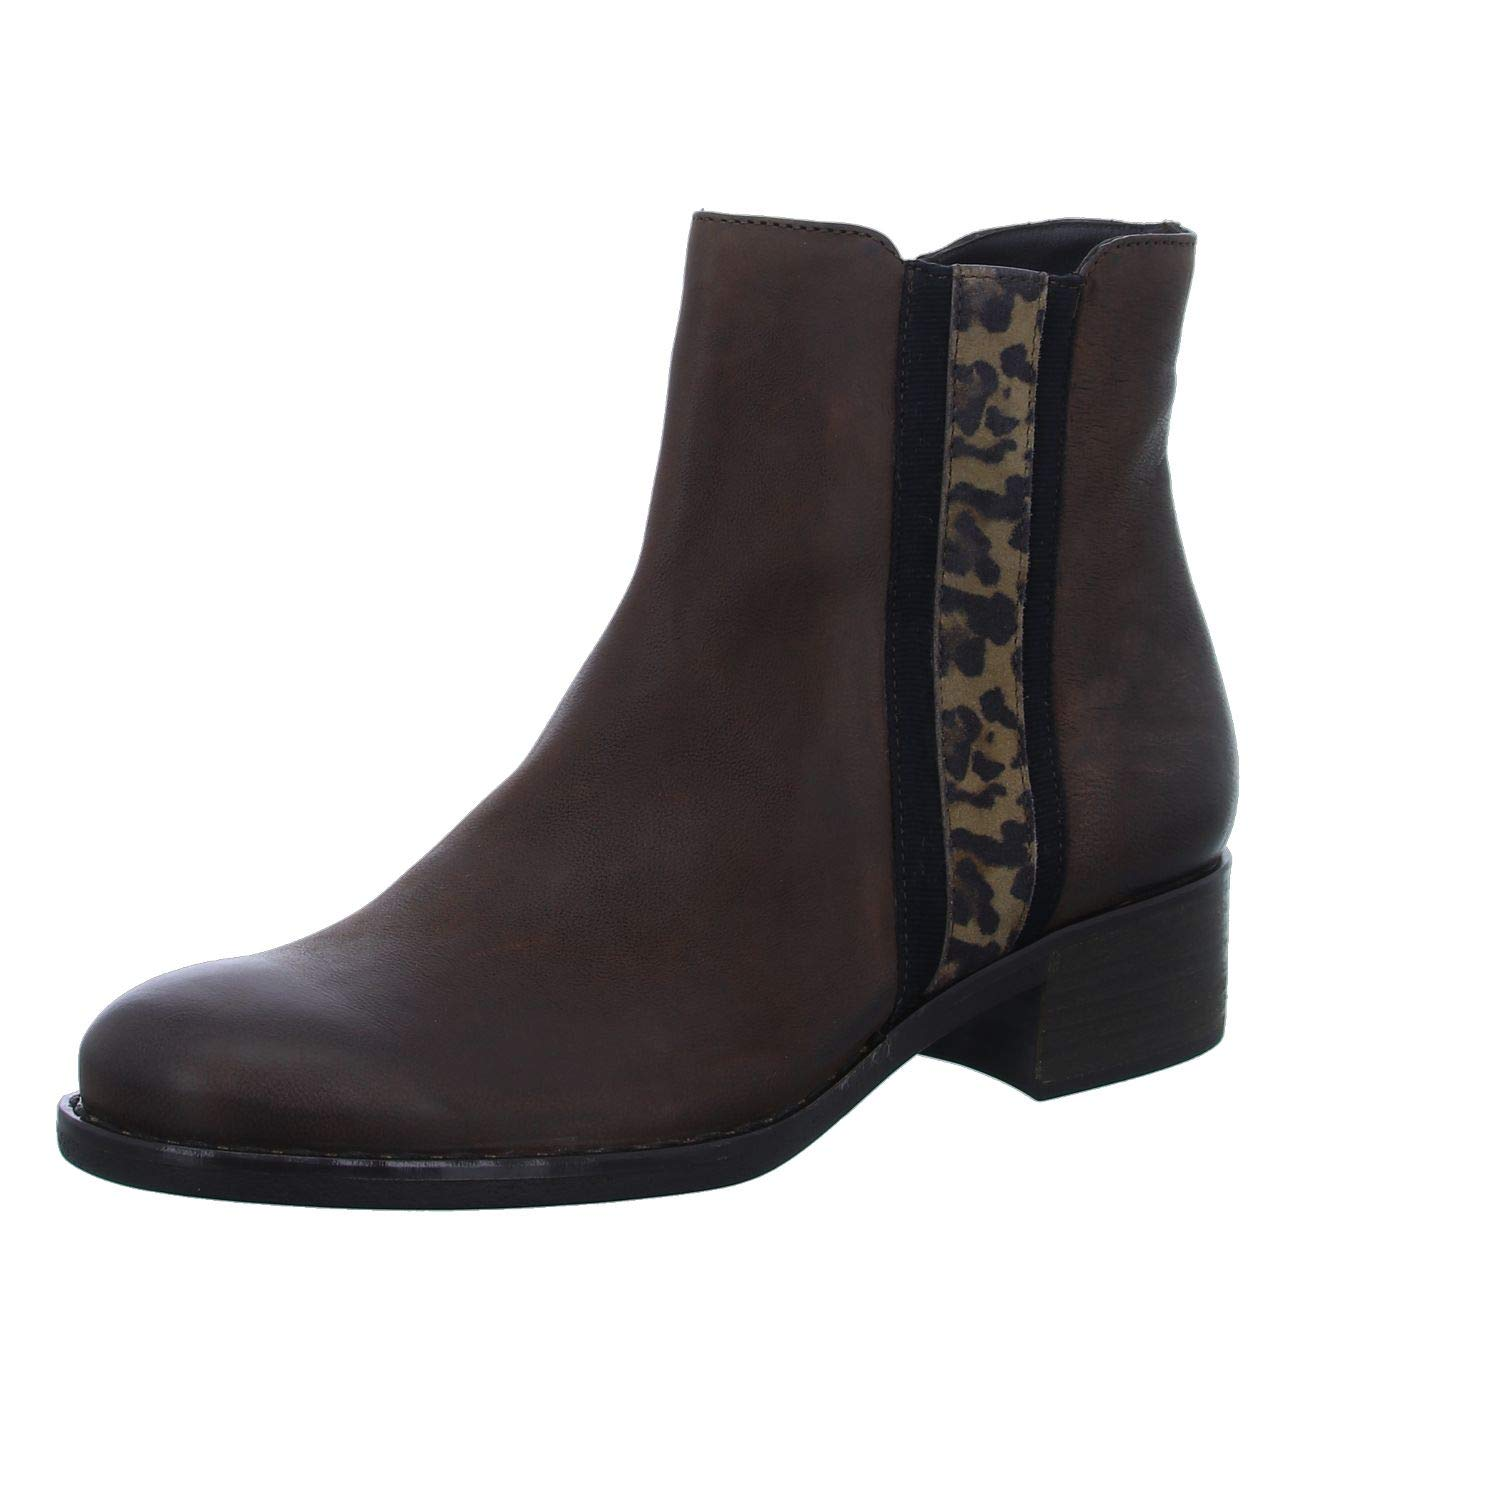 Paul Green Damen Stiefeletten 9505 9505 023 braun 569955